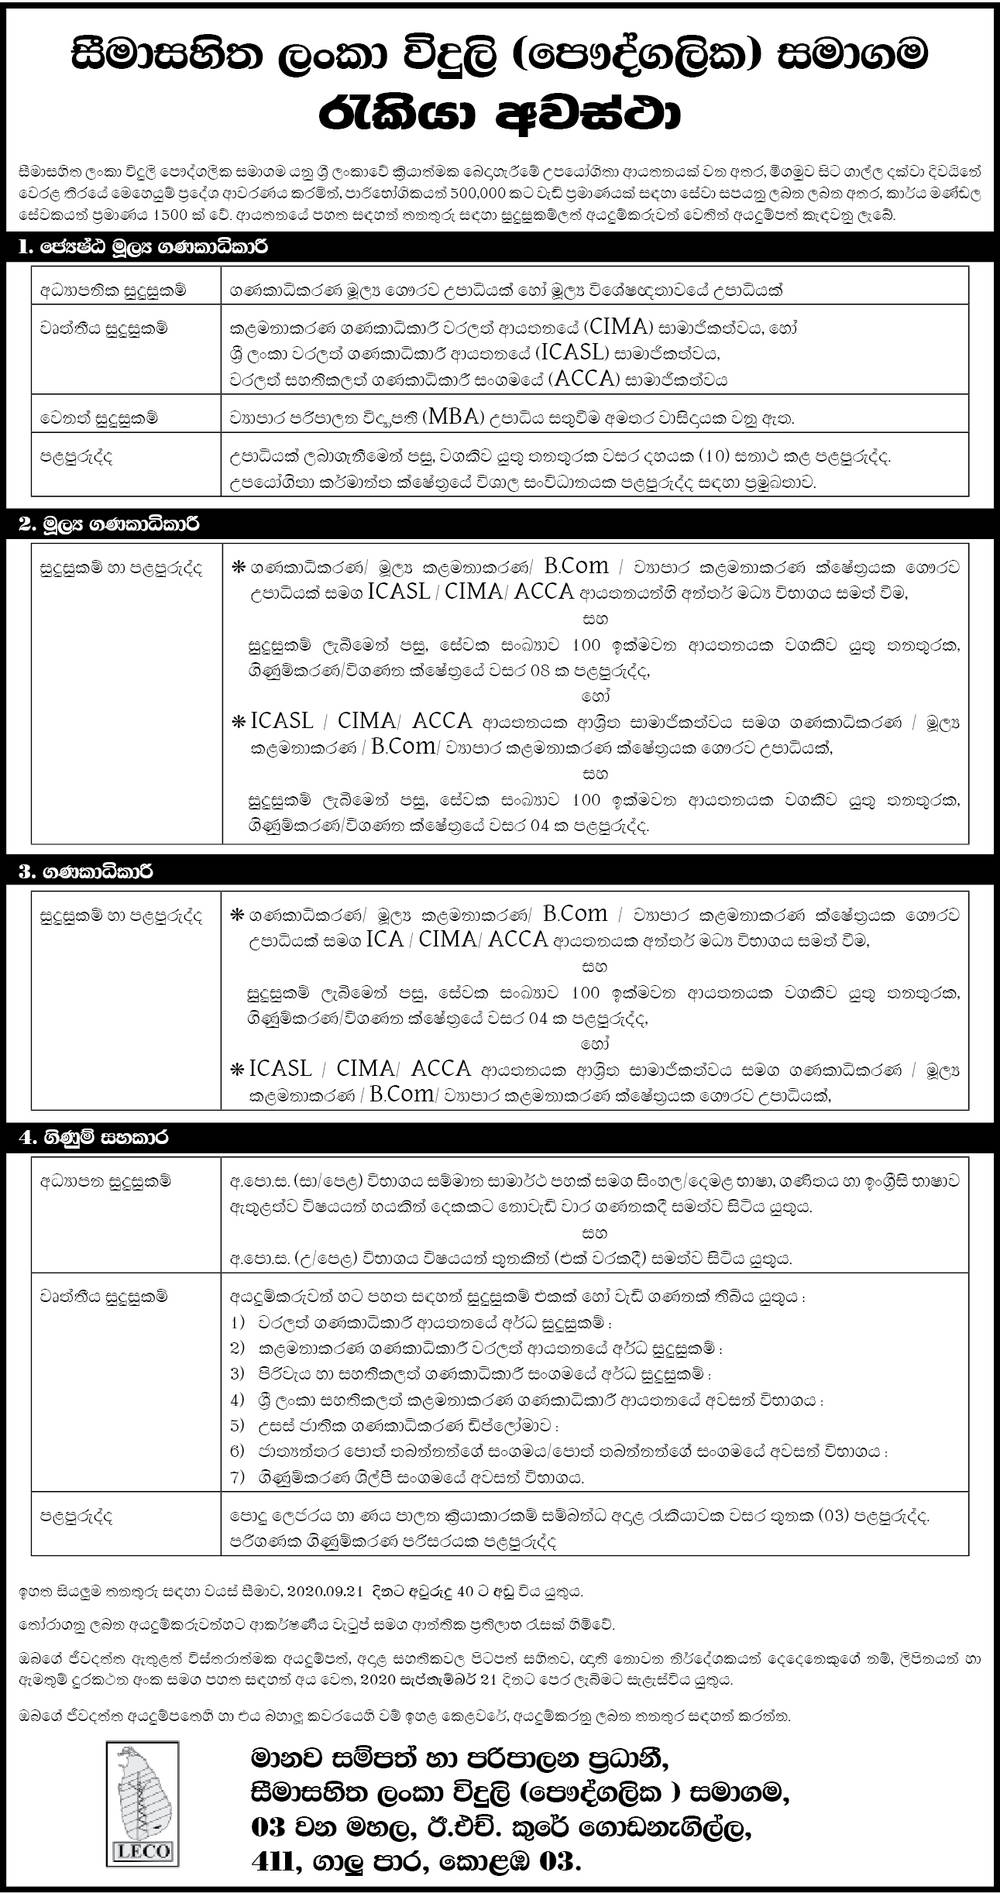 Senior Financial Accountant, Financial Accountant, Accountant, Accounts Assistant - Lanka Electricity Company (Private) Limited